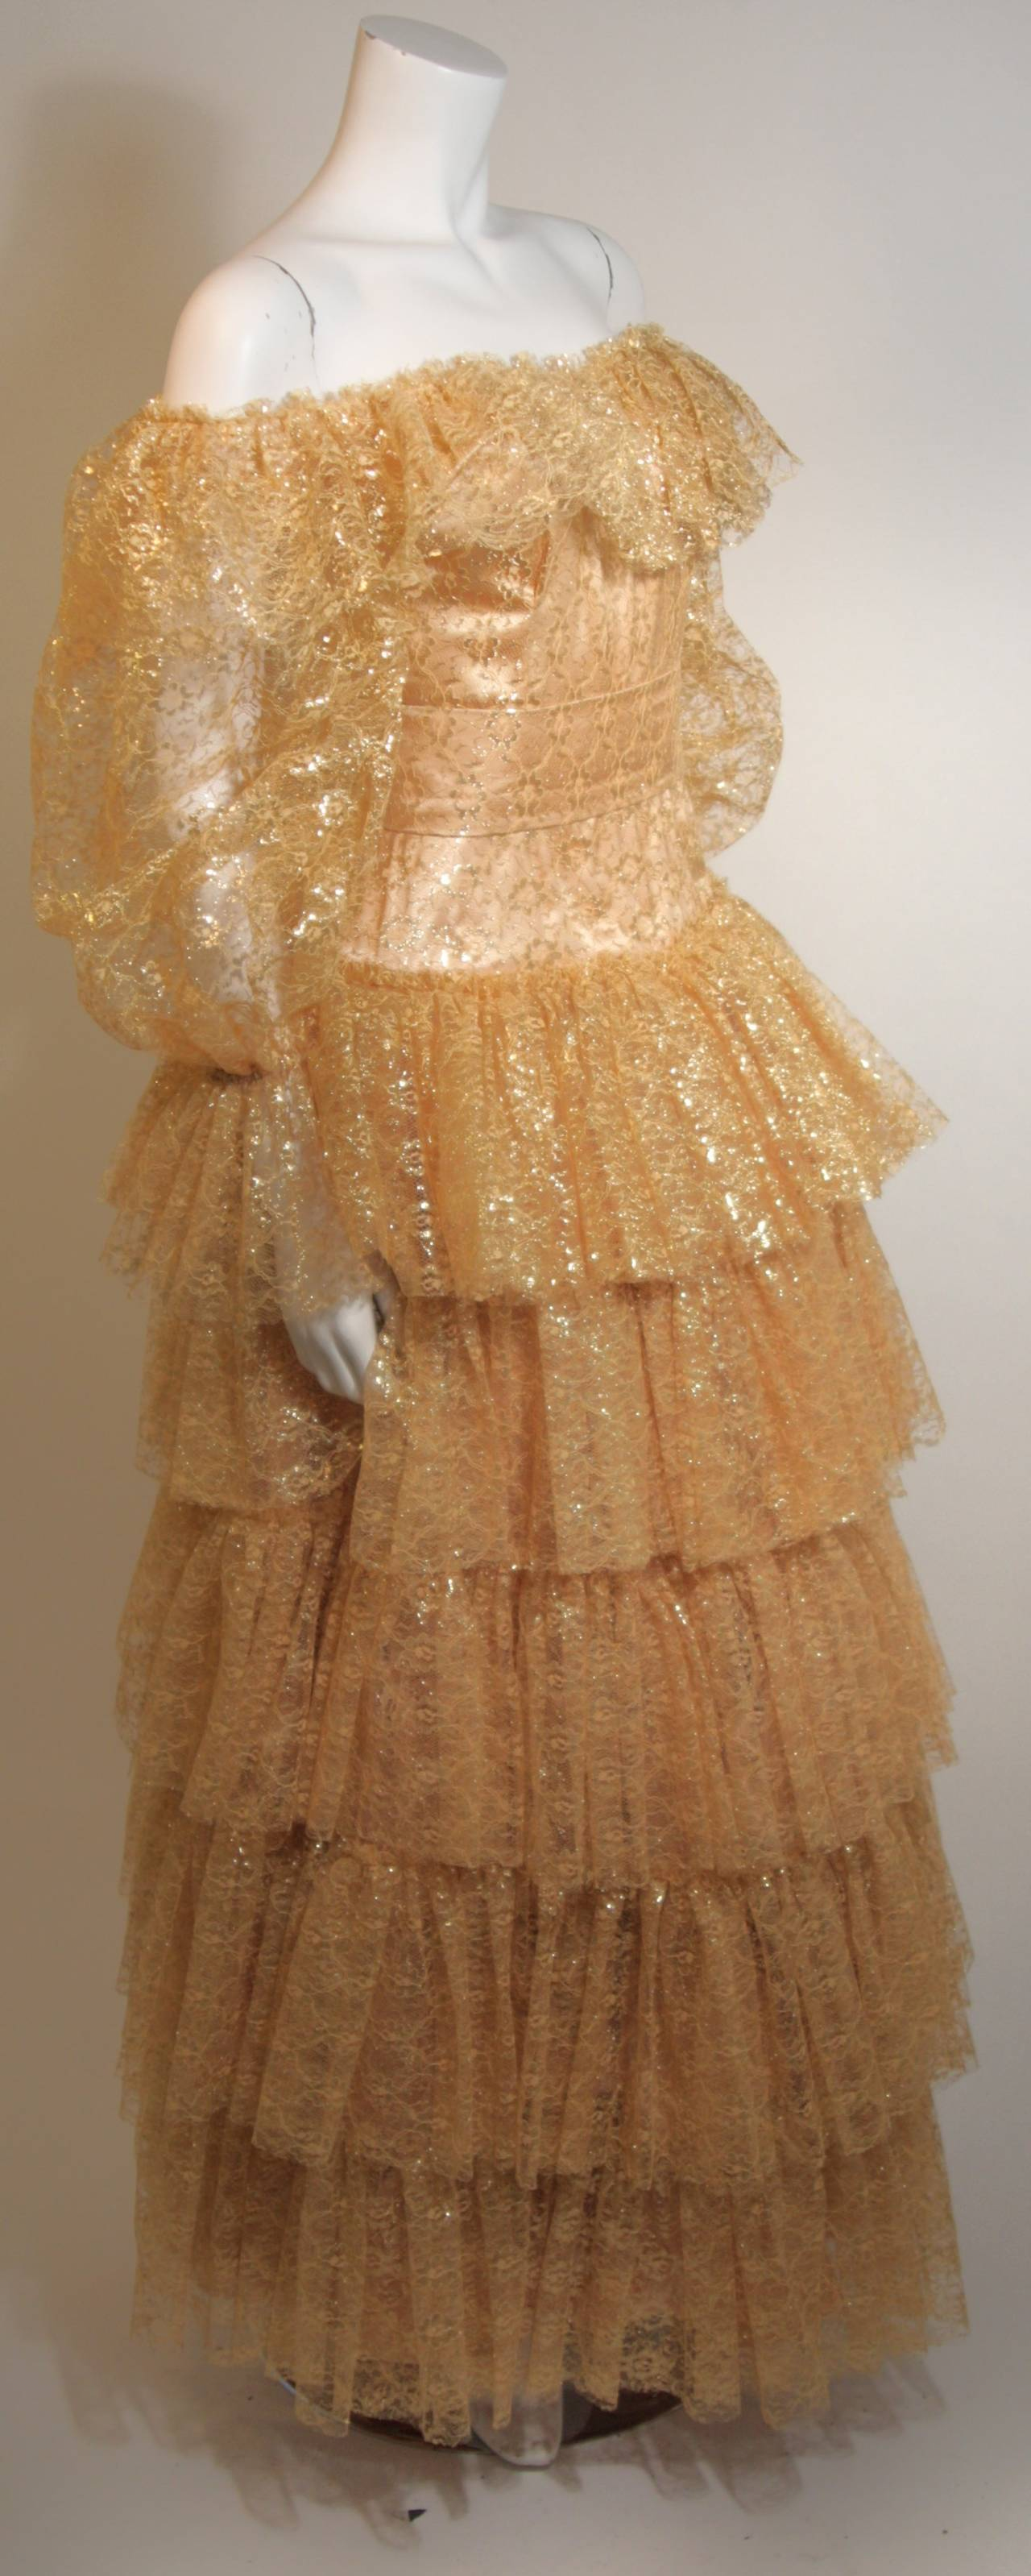 Brown Attributed to Travilla Gold Tiered Lace Ball Gown with sheer lace sleeves size 4 For Sale